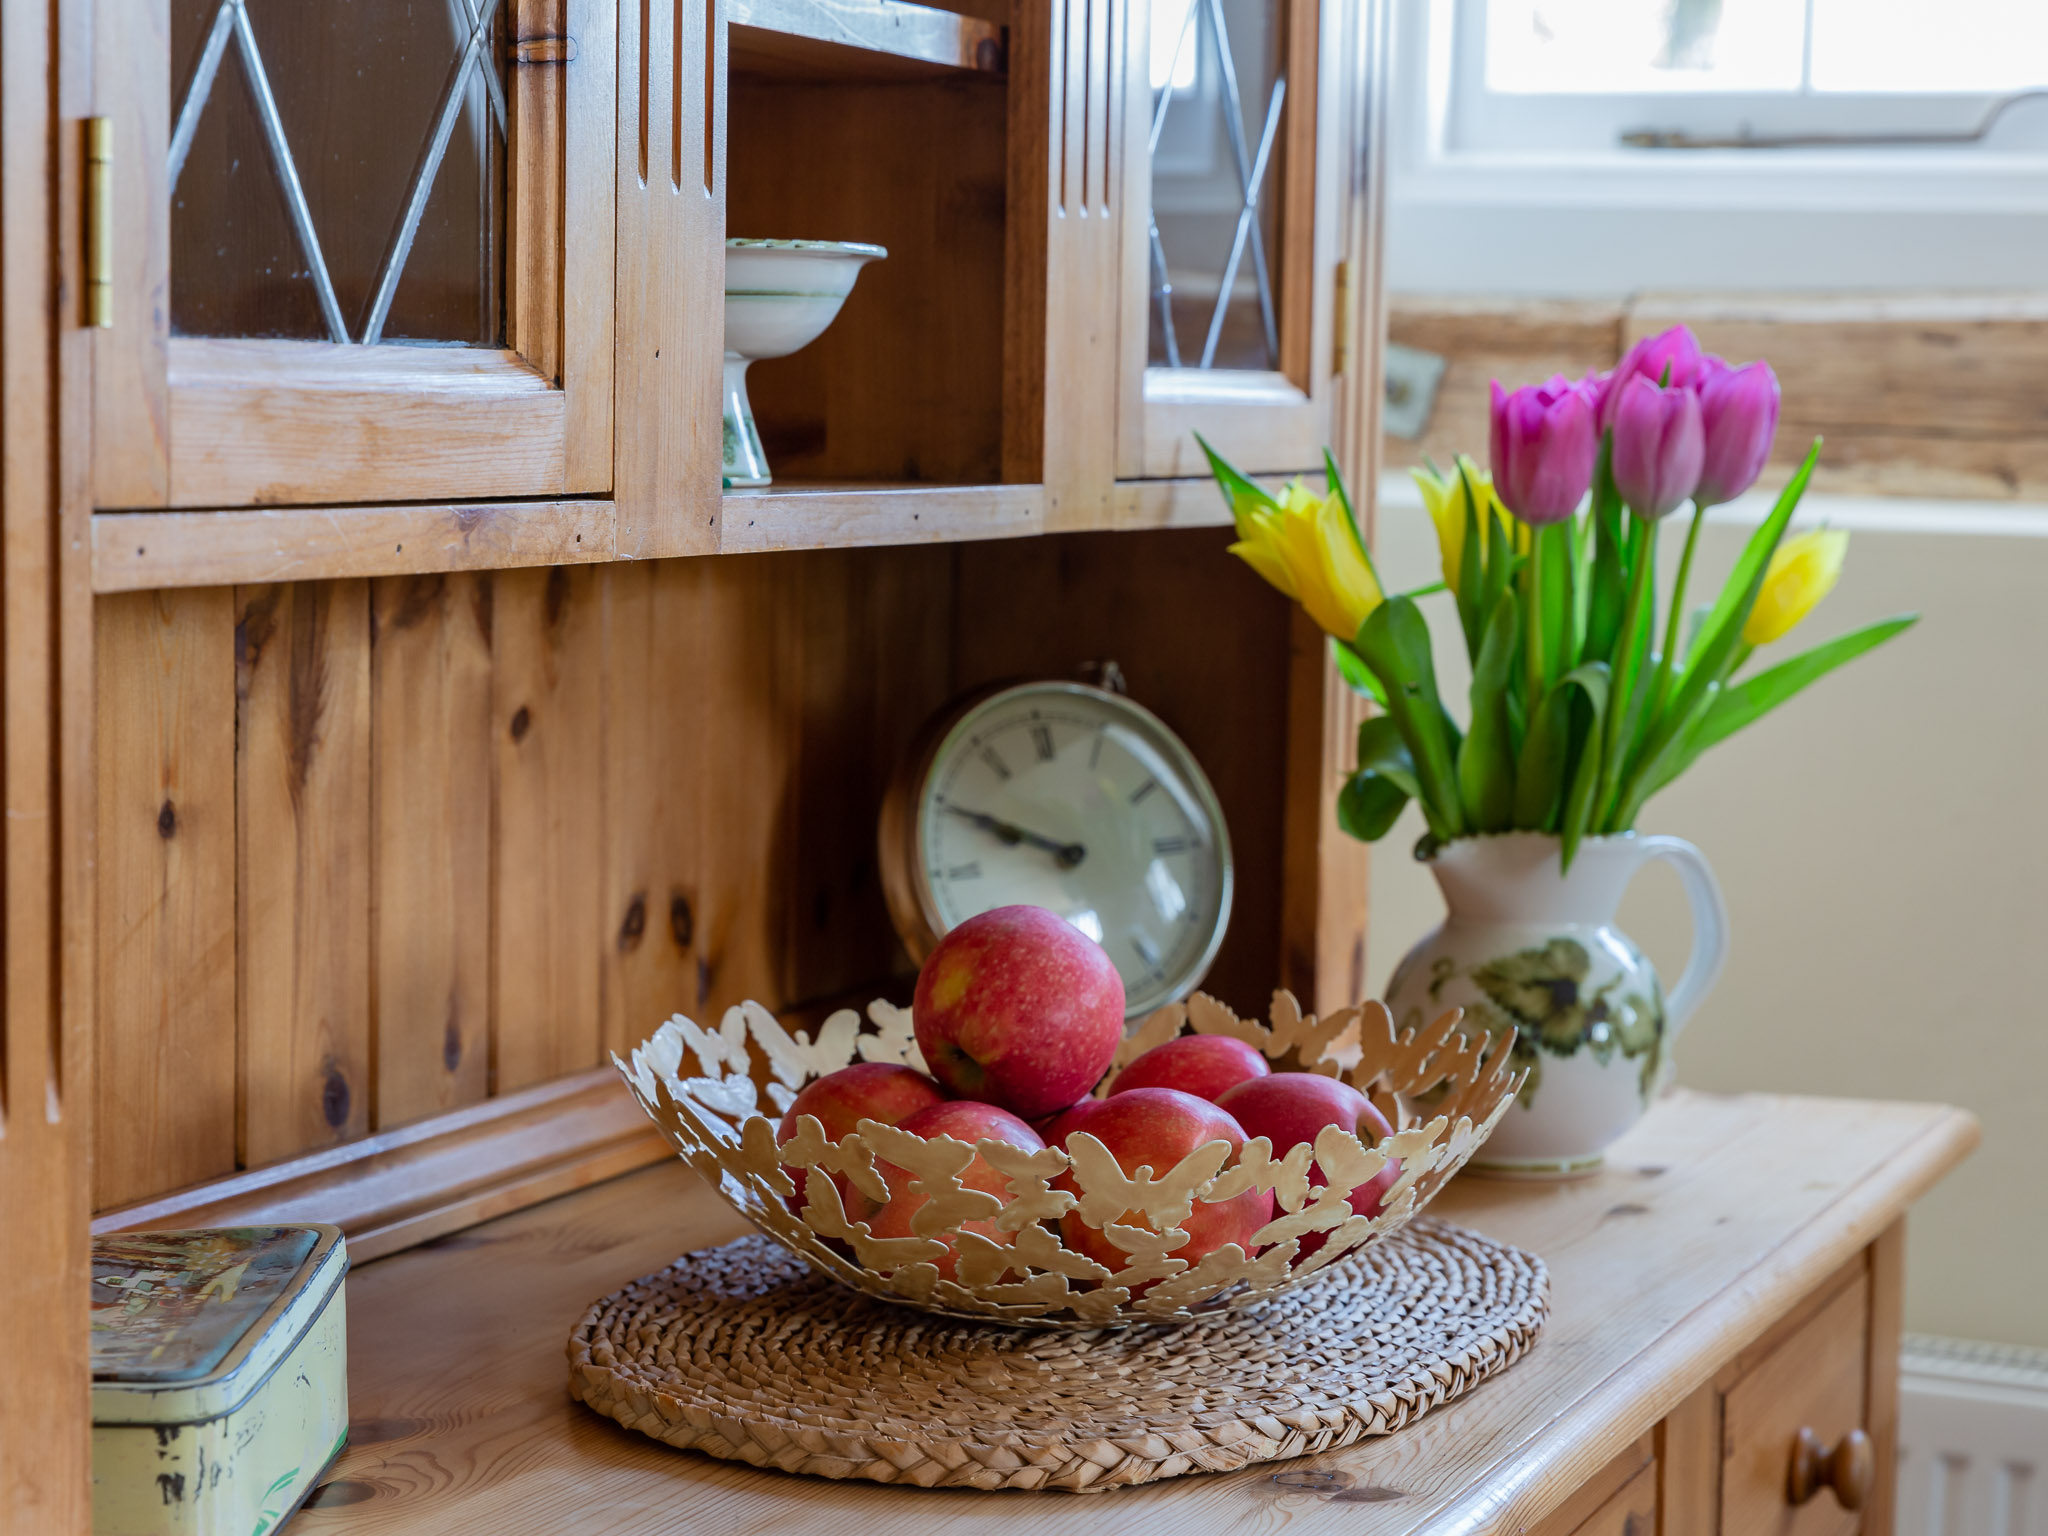 Local apples and flowers from the garden sit on the welsh dresser